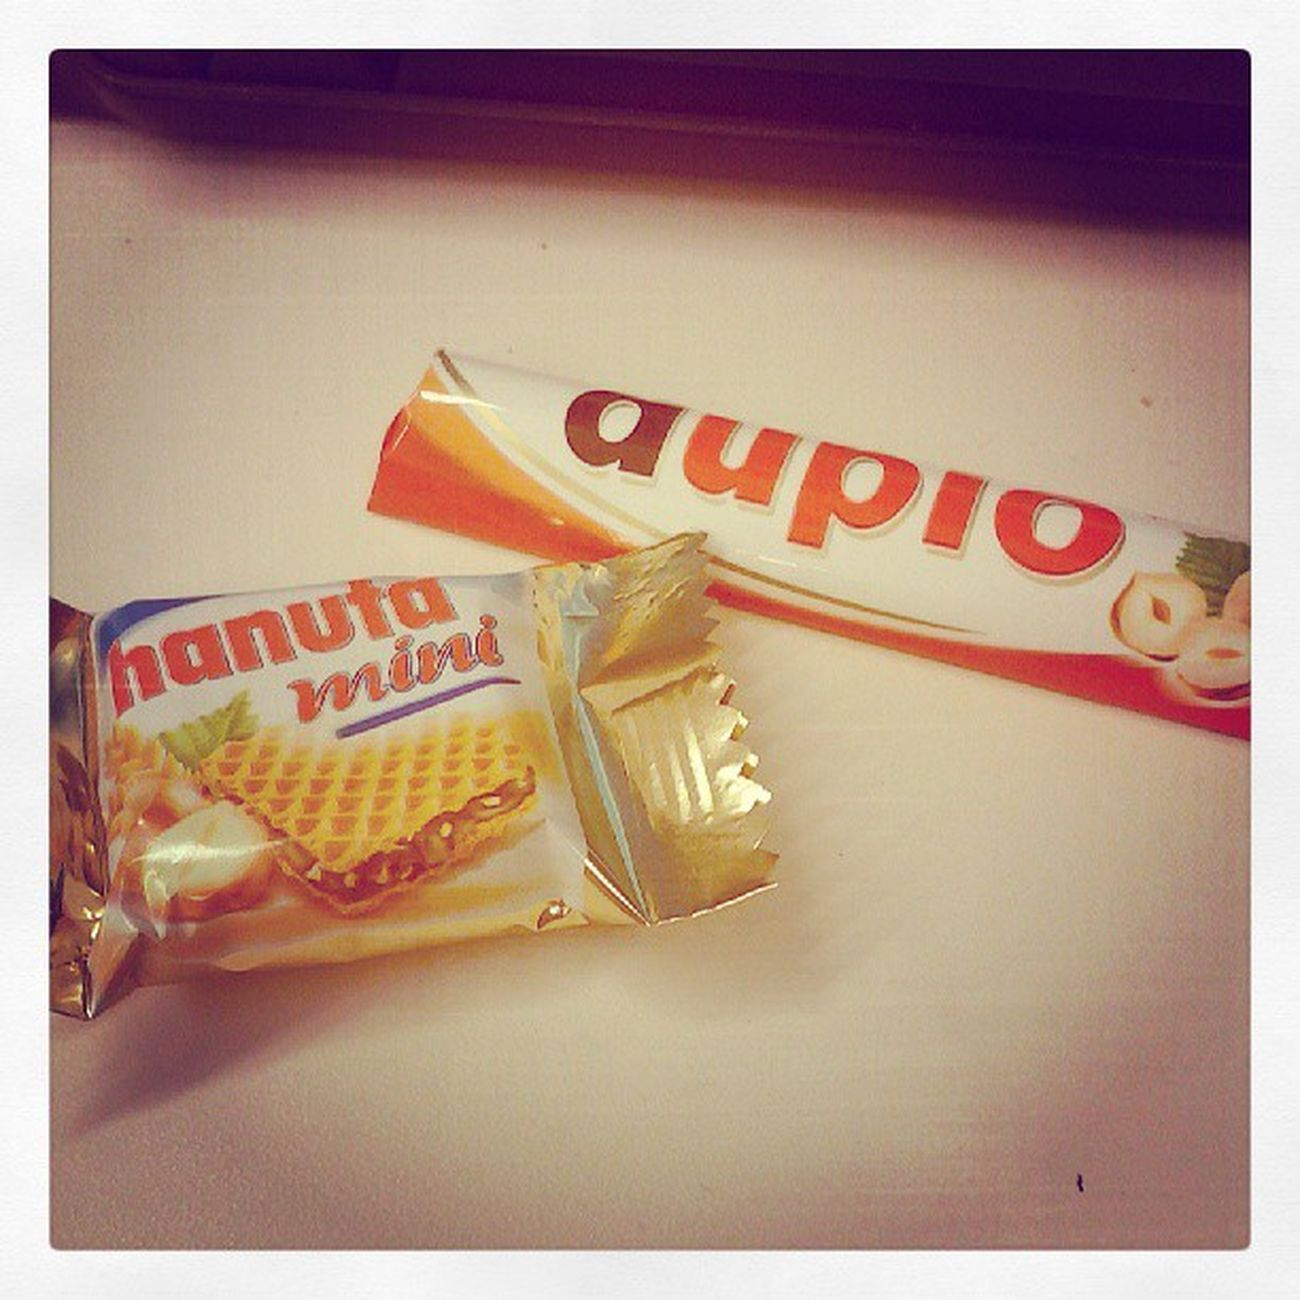 German treats from my boss! @briannaweekley did you get german treats? NOPE! Imdafavorite